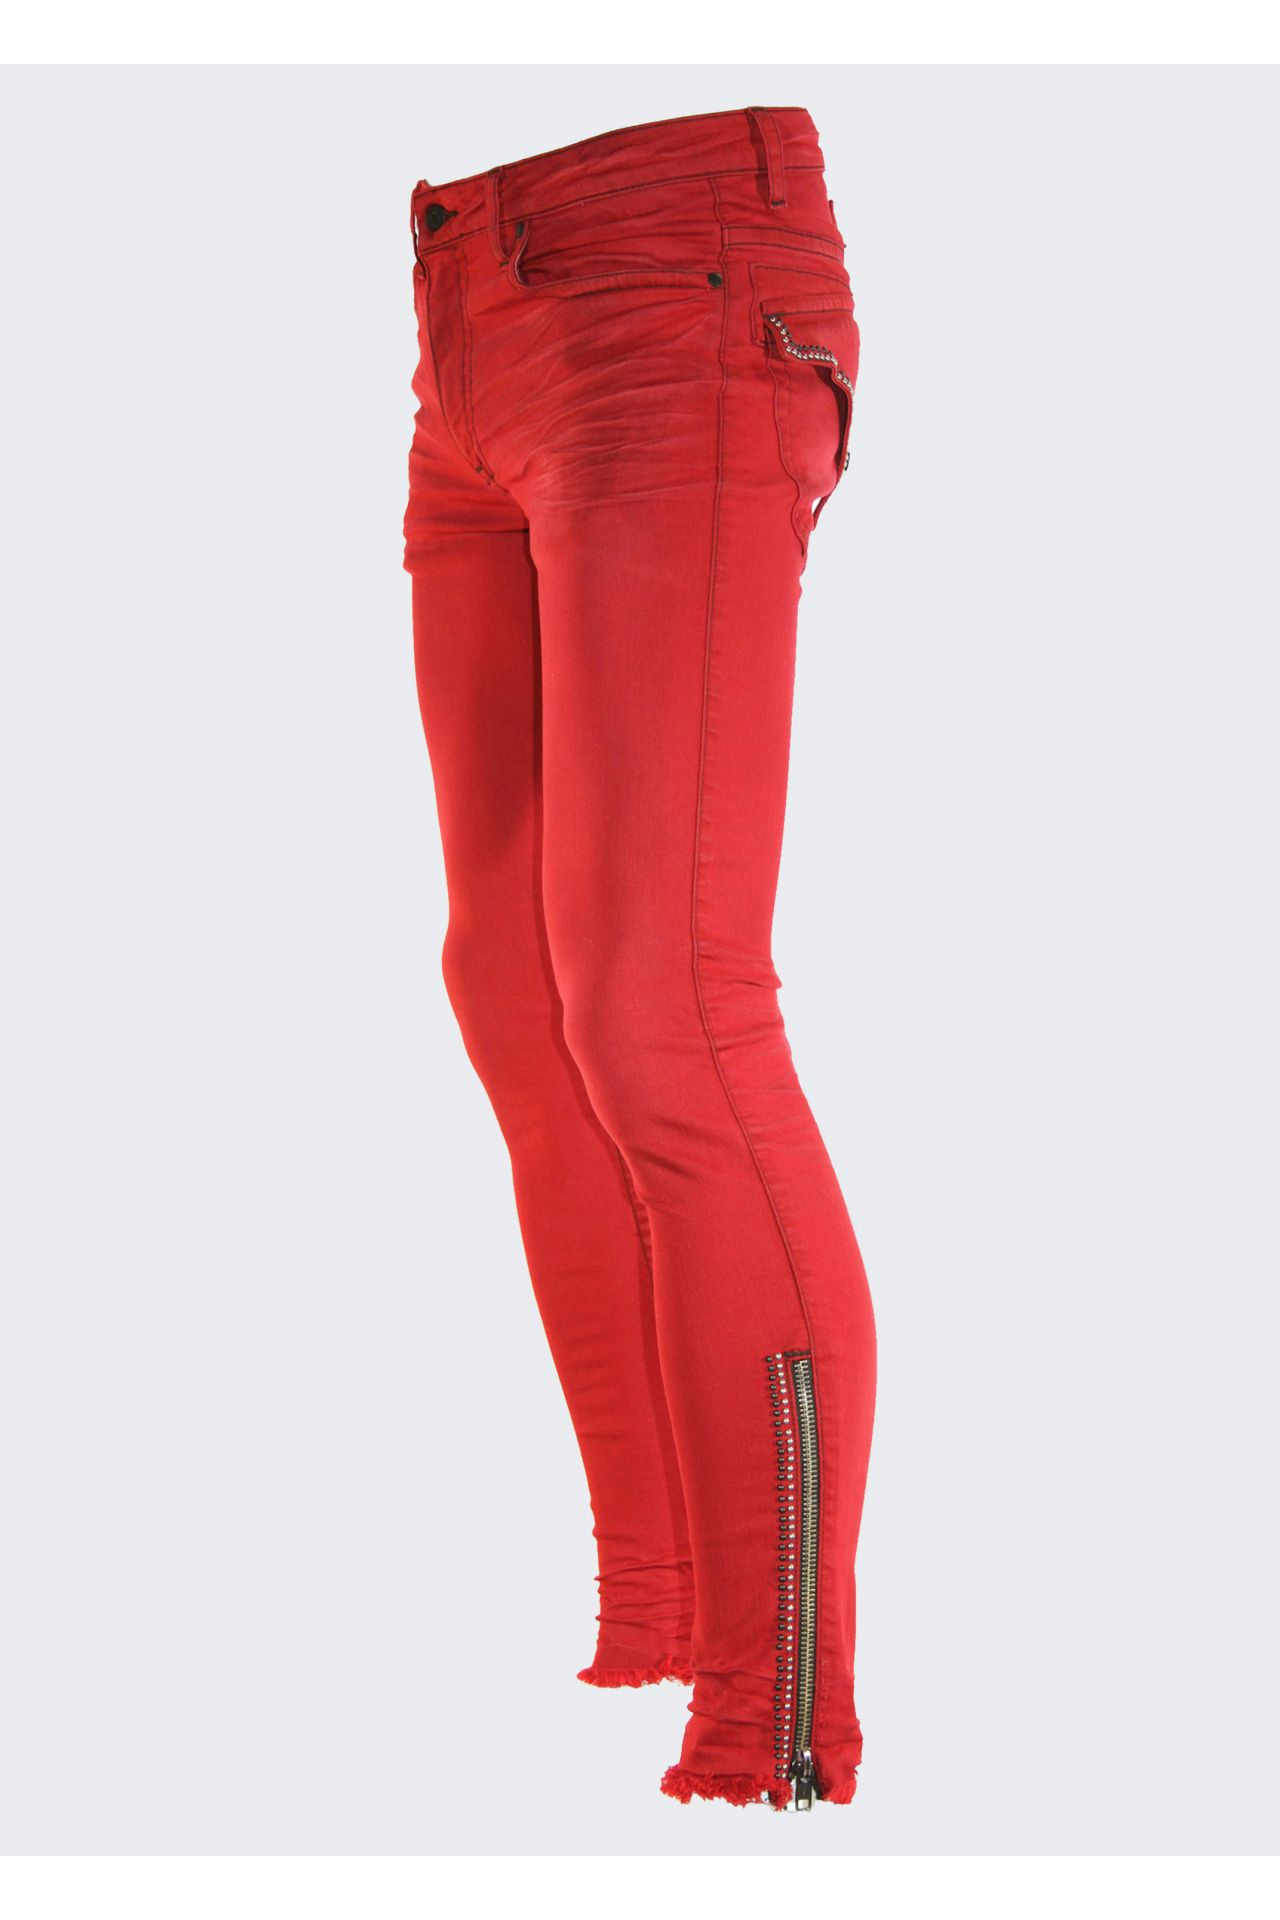 SUPER SKINNY IN F_UP RED WITH STUDS AND ZIPPER